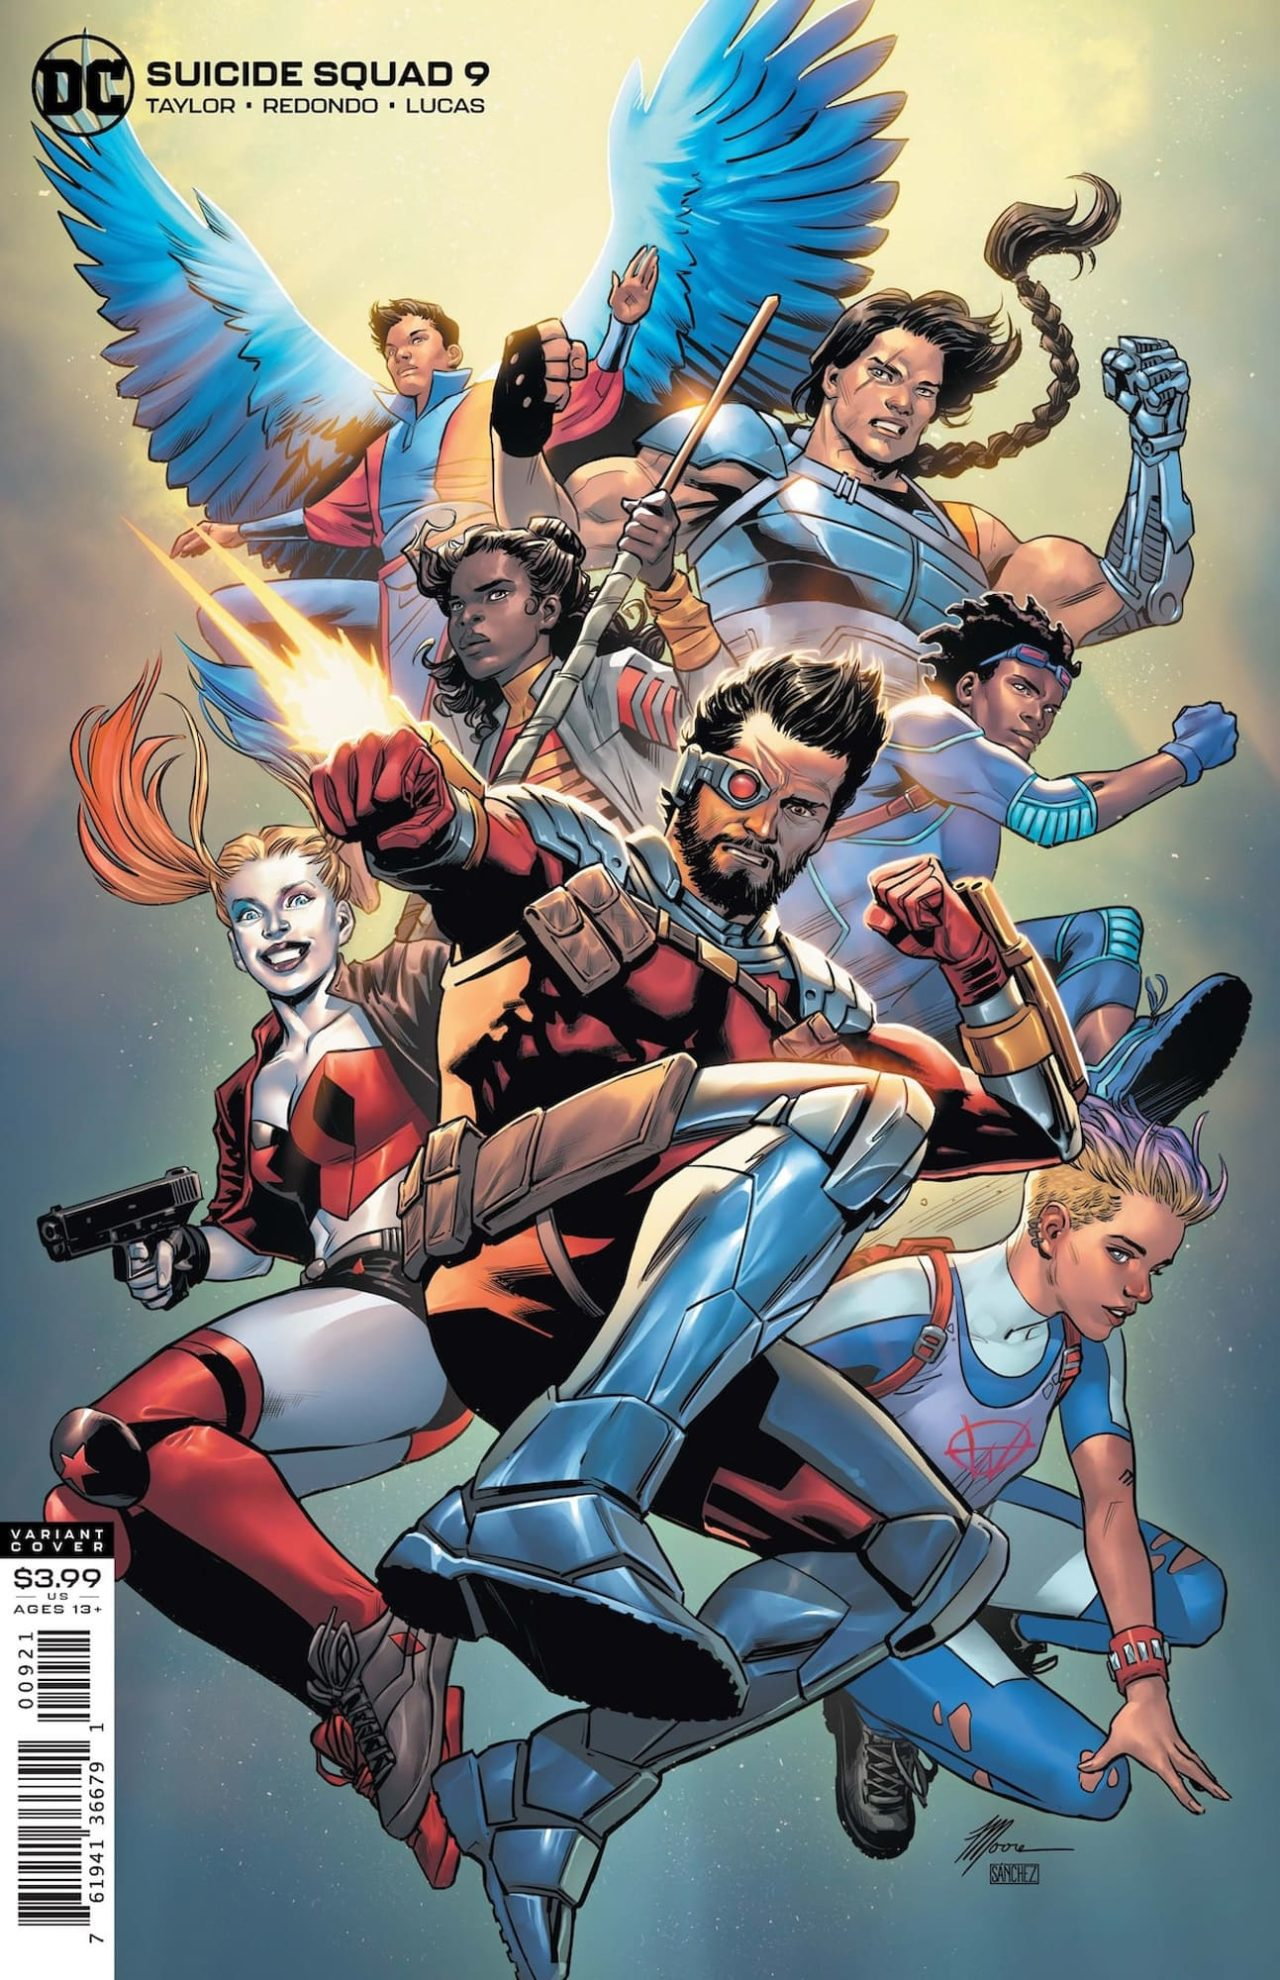 suicide squad 9 vcover1 1